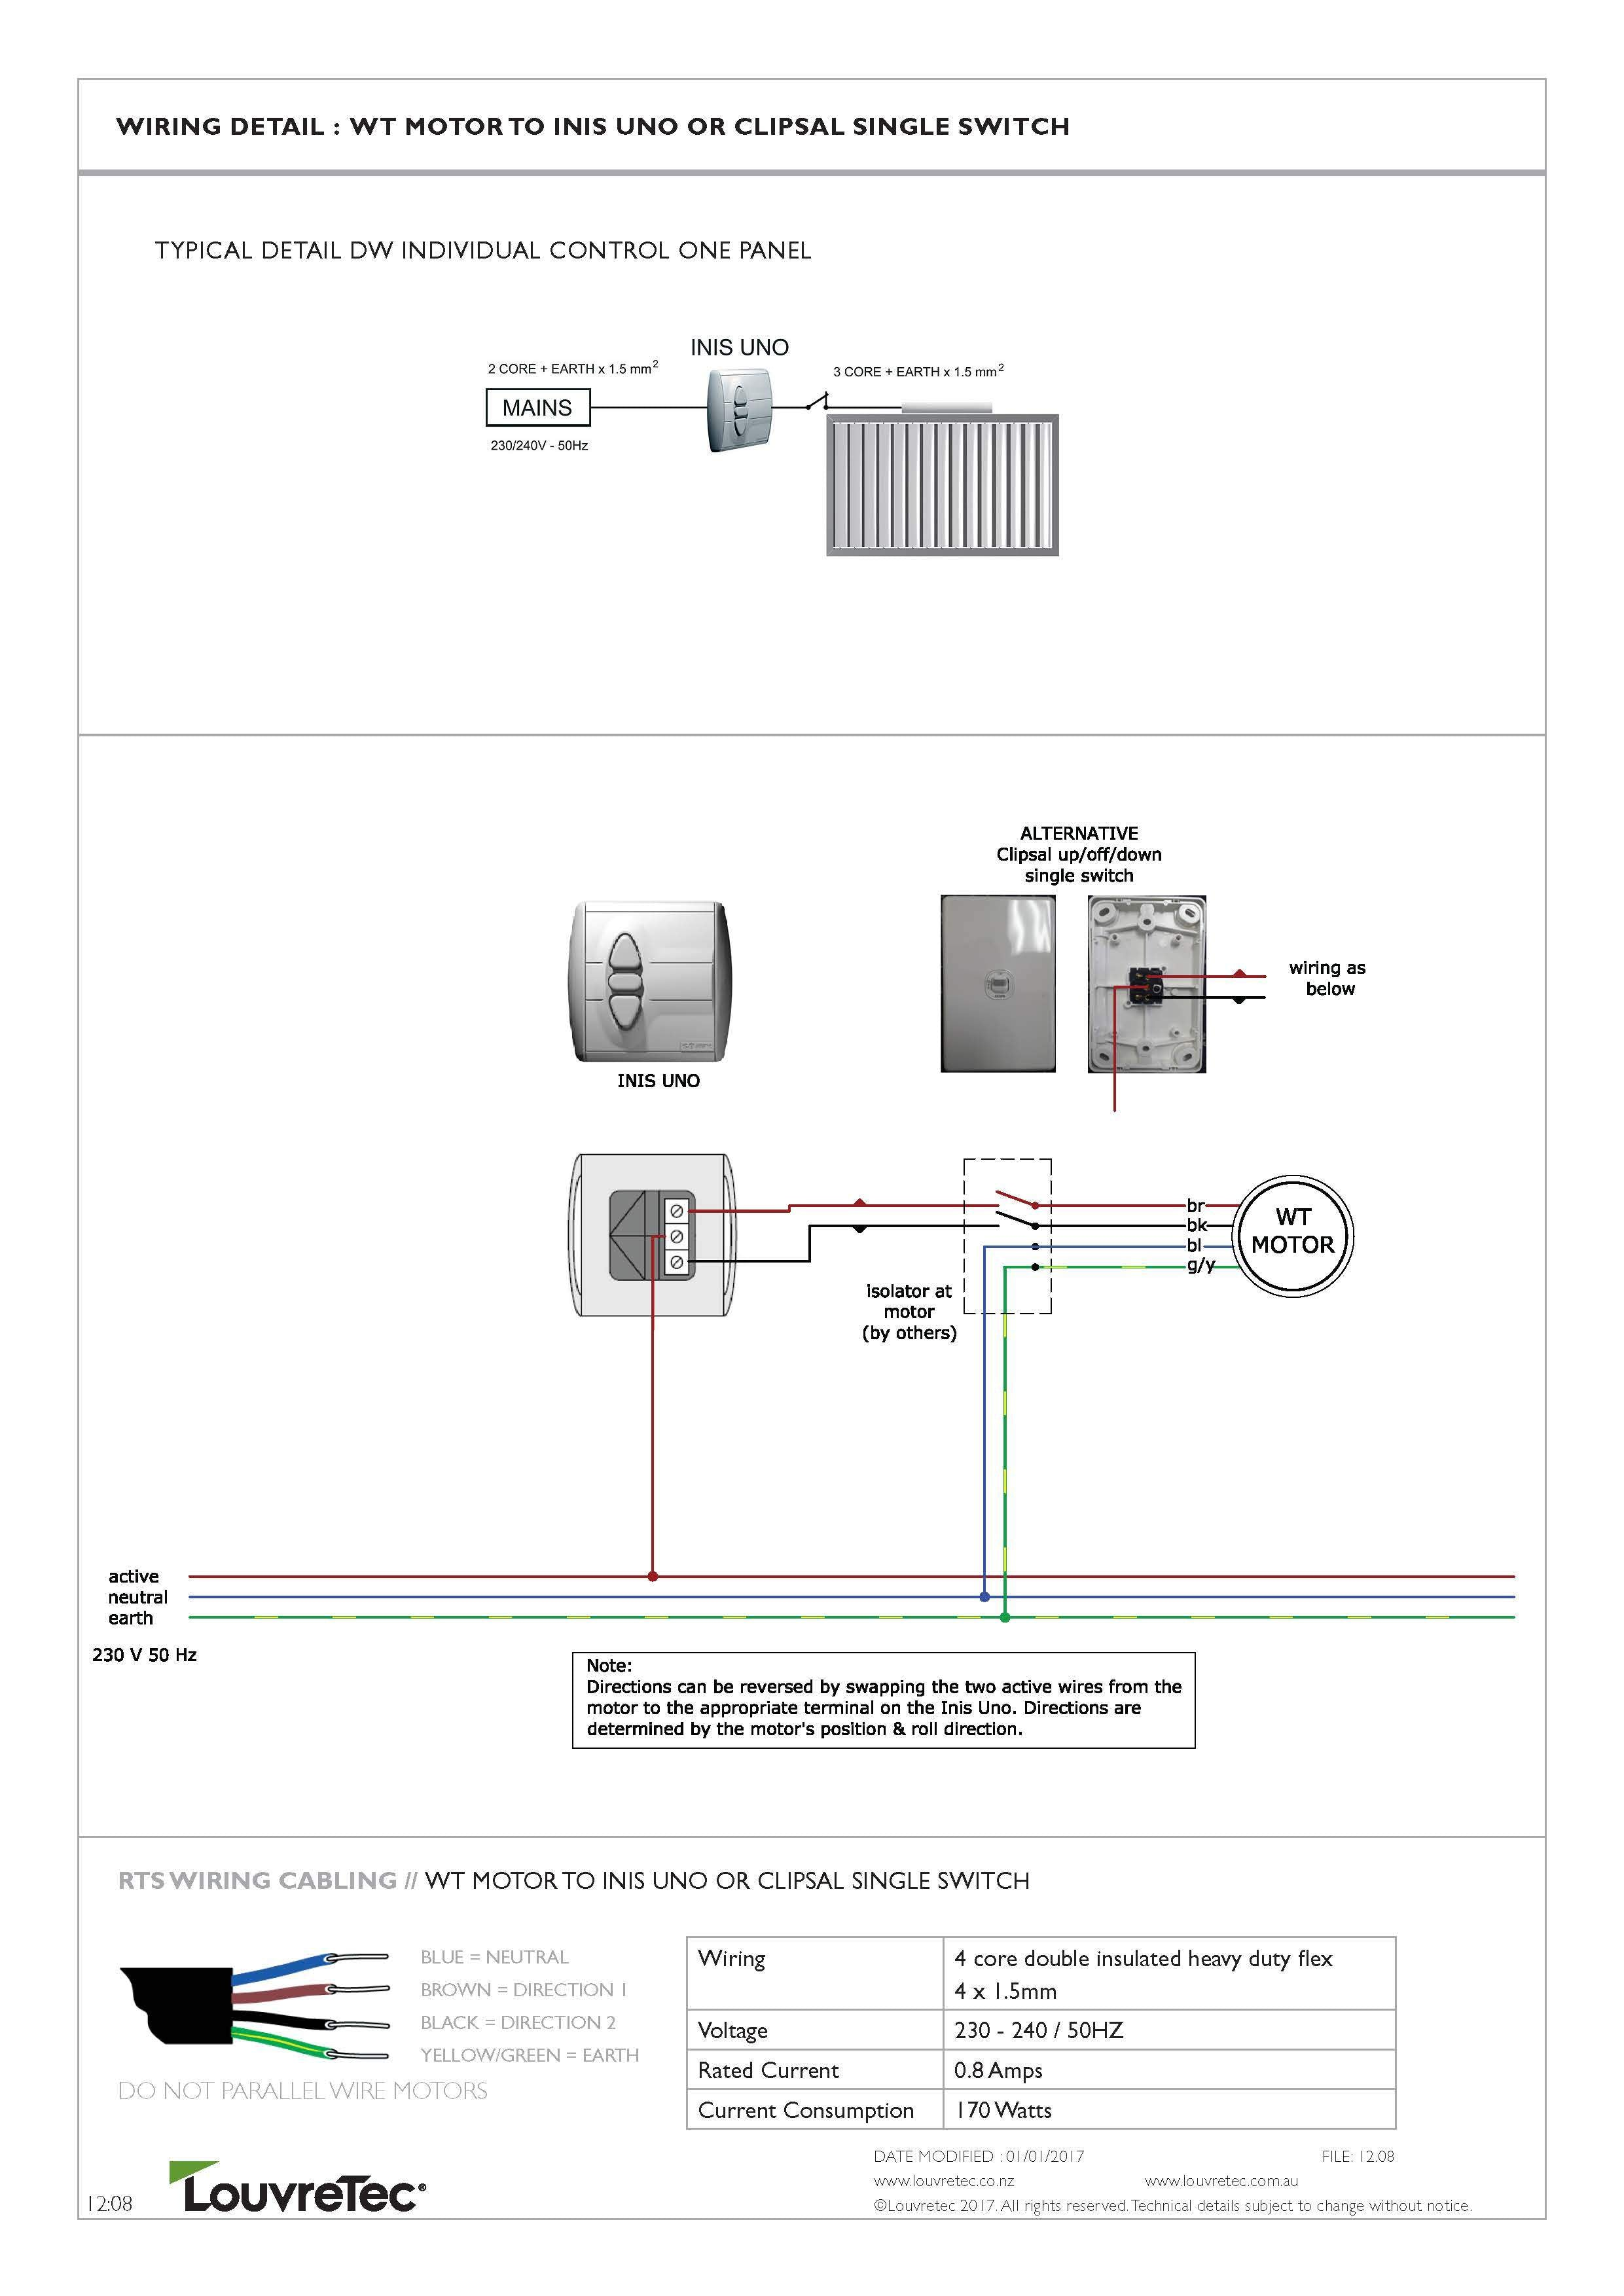 Famous Bluebird Wiring Schematics Image - Best Images for wiring ...